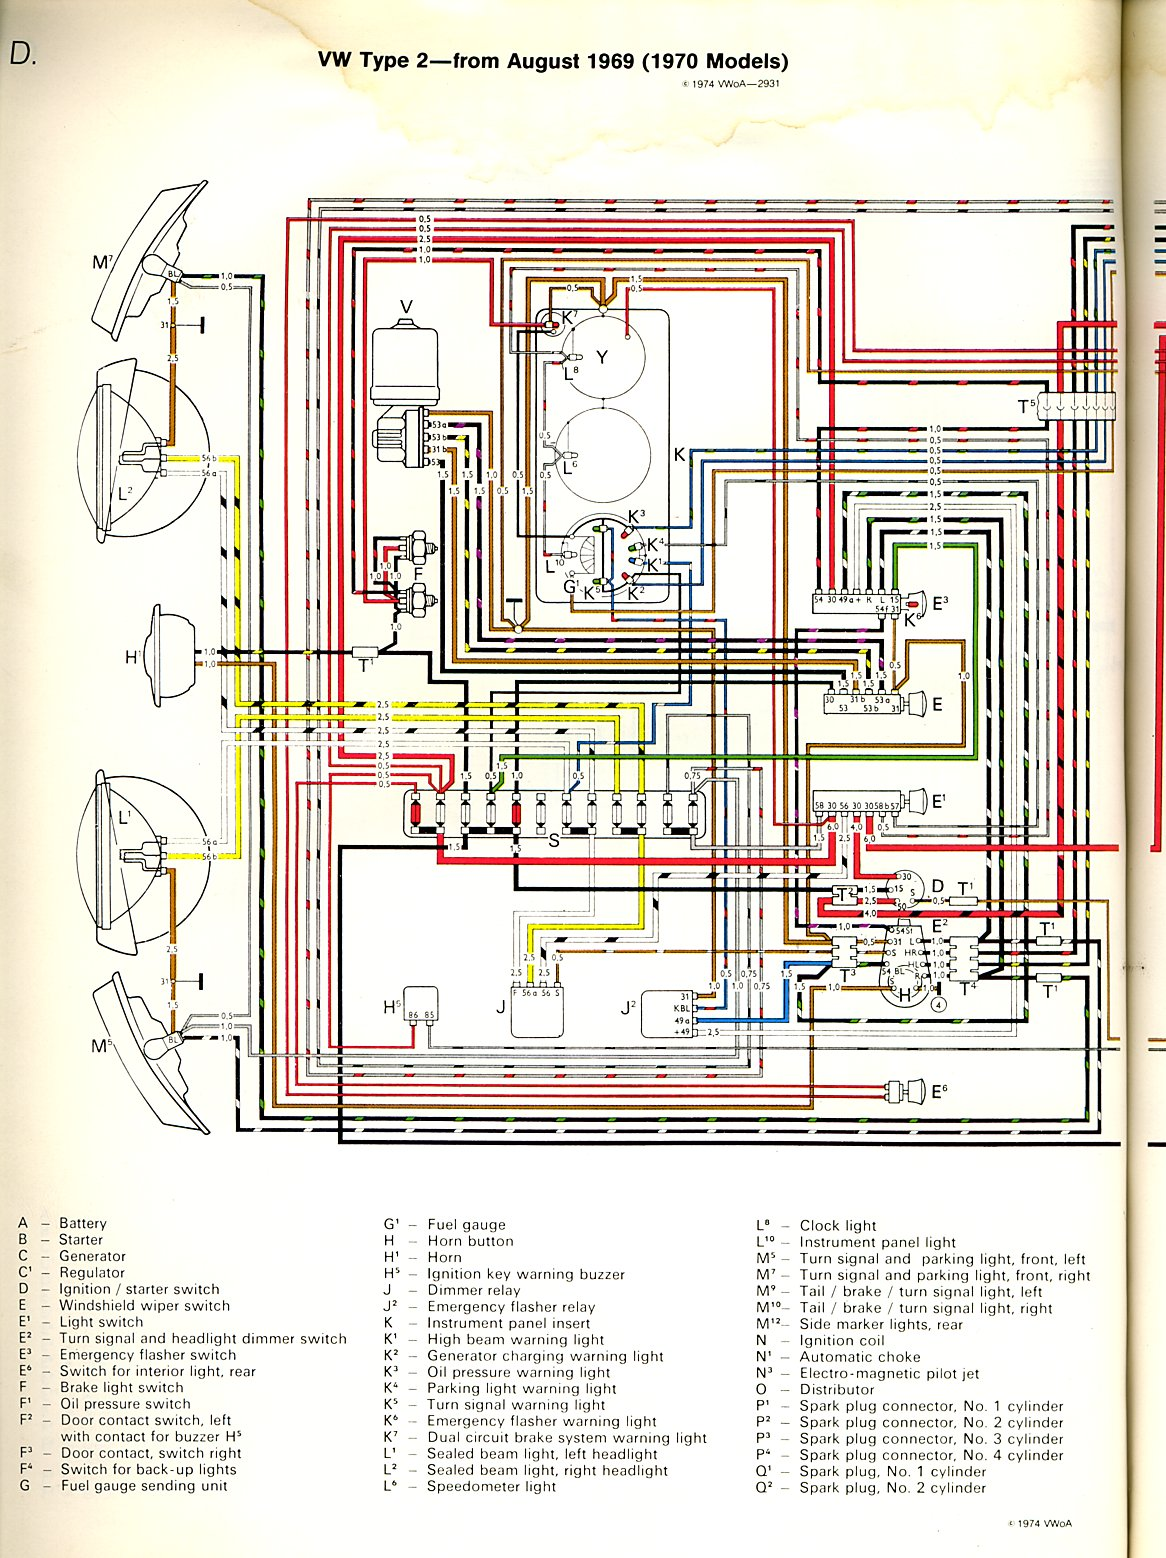 baybus_70a thesamba com type 2 wiring diagrams vw t4 fuse box wiring diagram at edmiracle.co